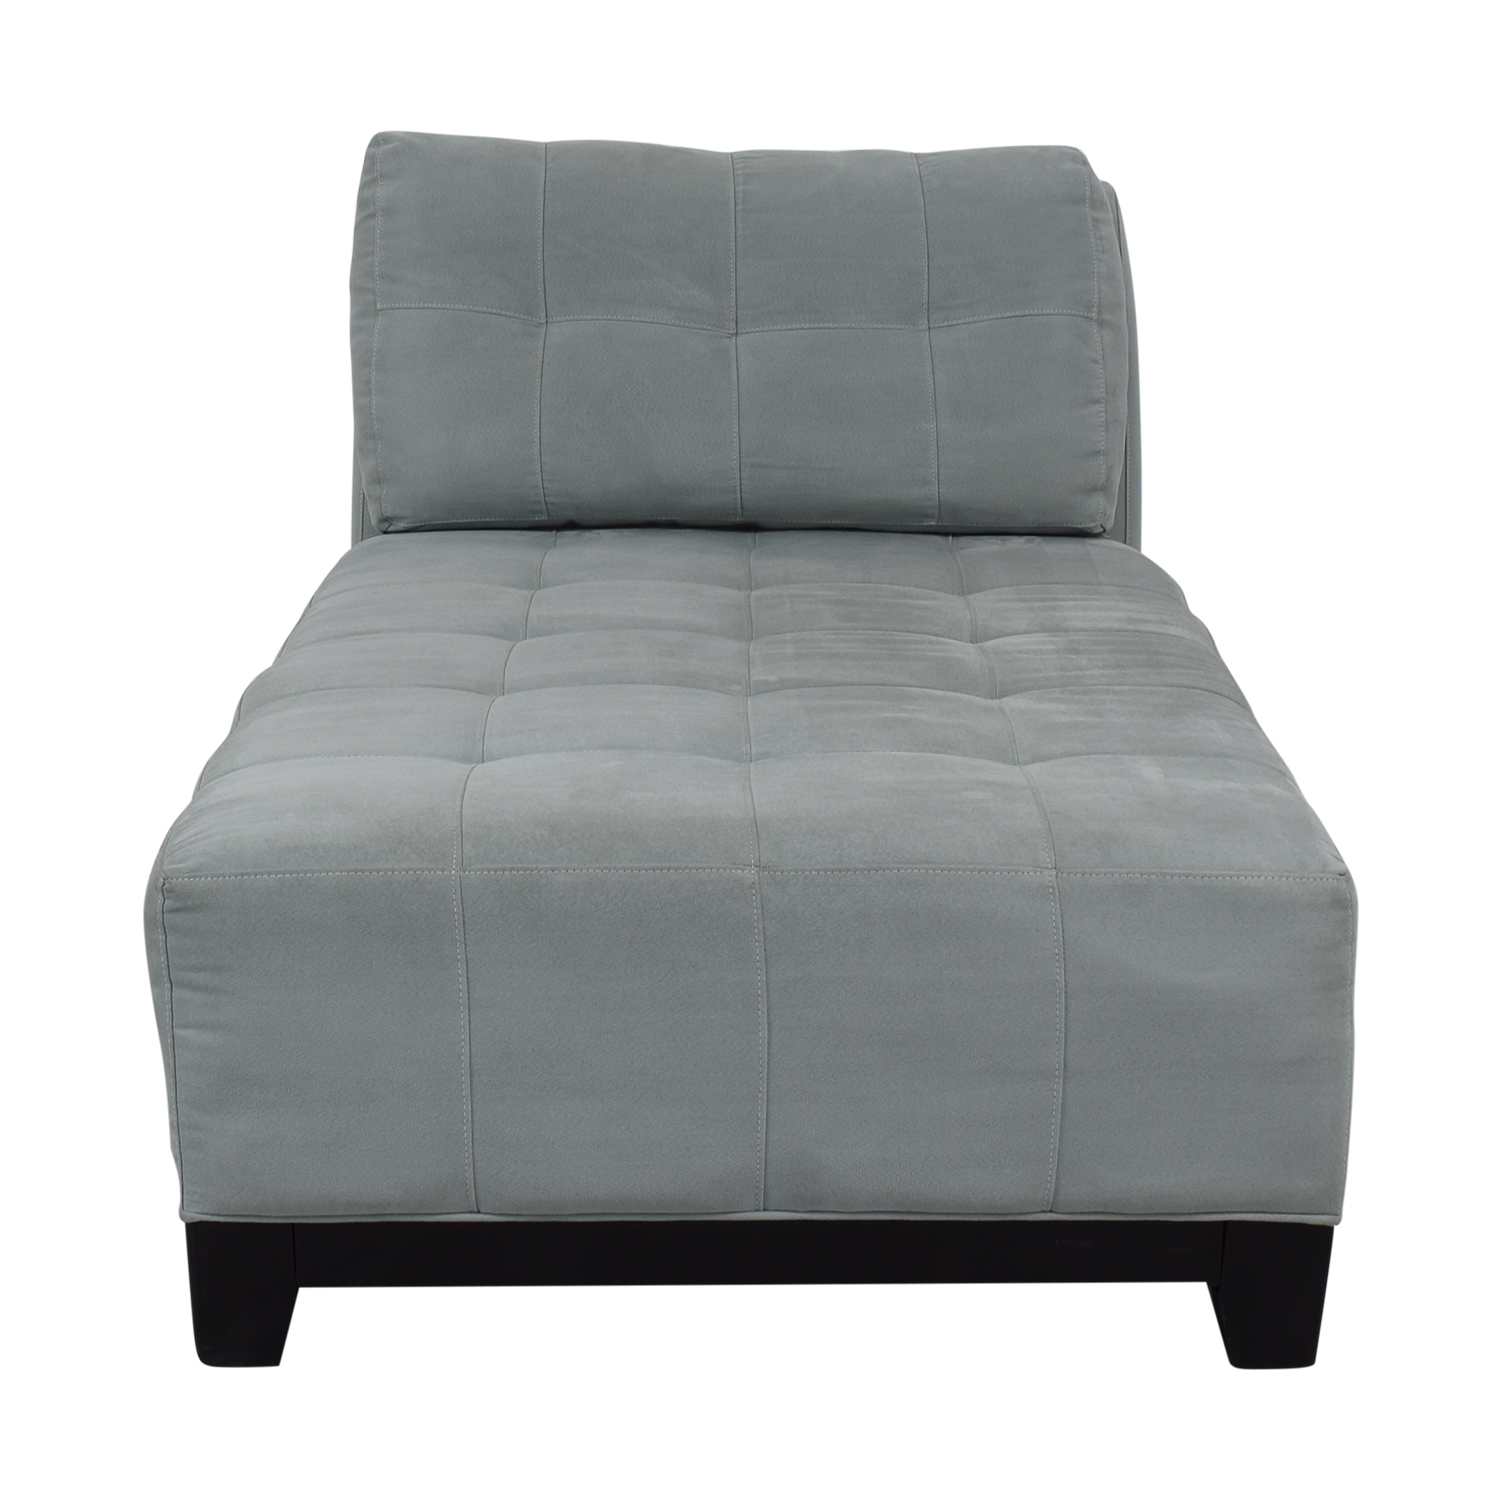 HM Richards Furniture HM Richards Furniture Chaise Lounge for sale